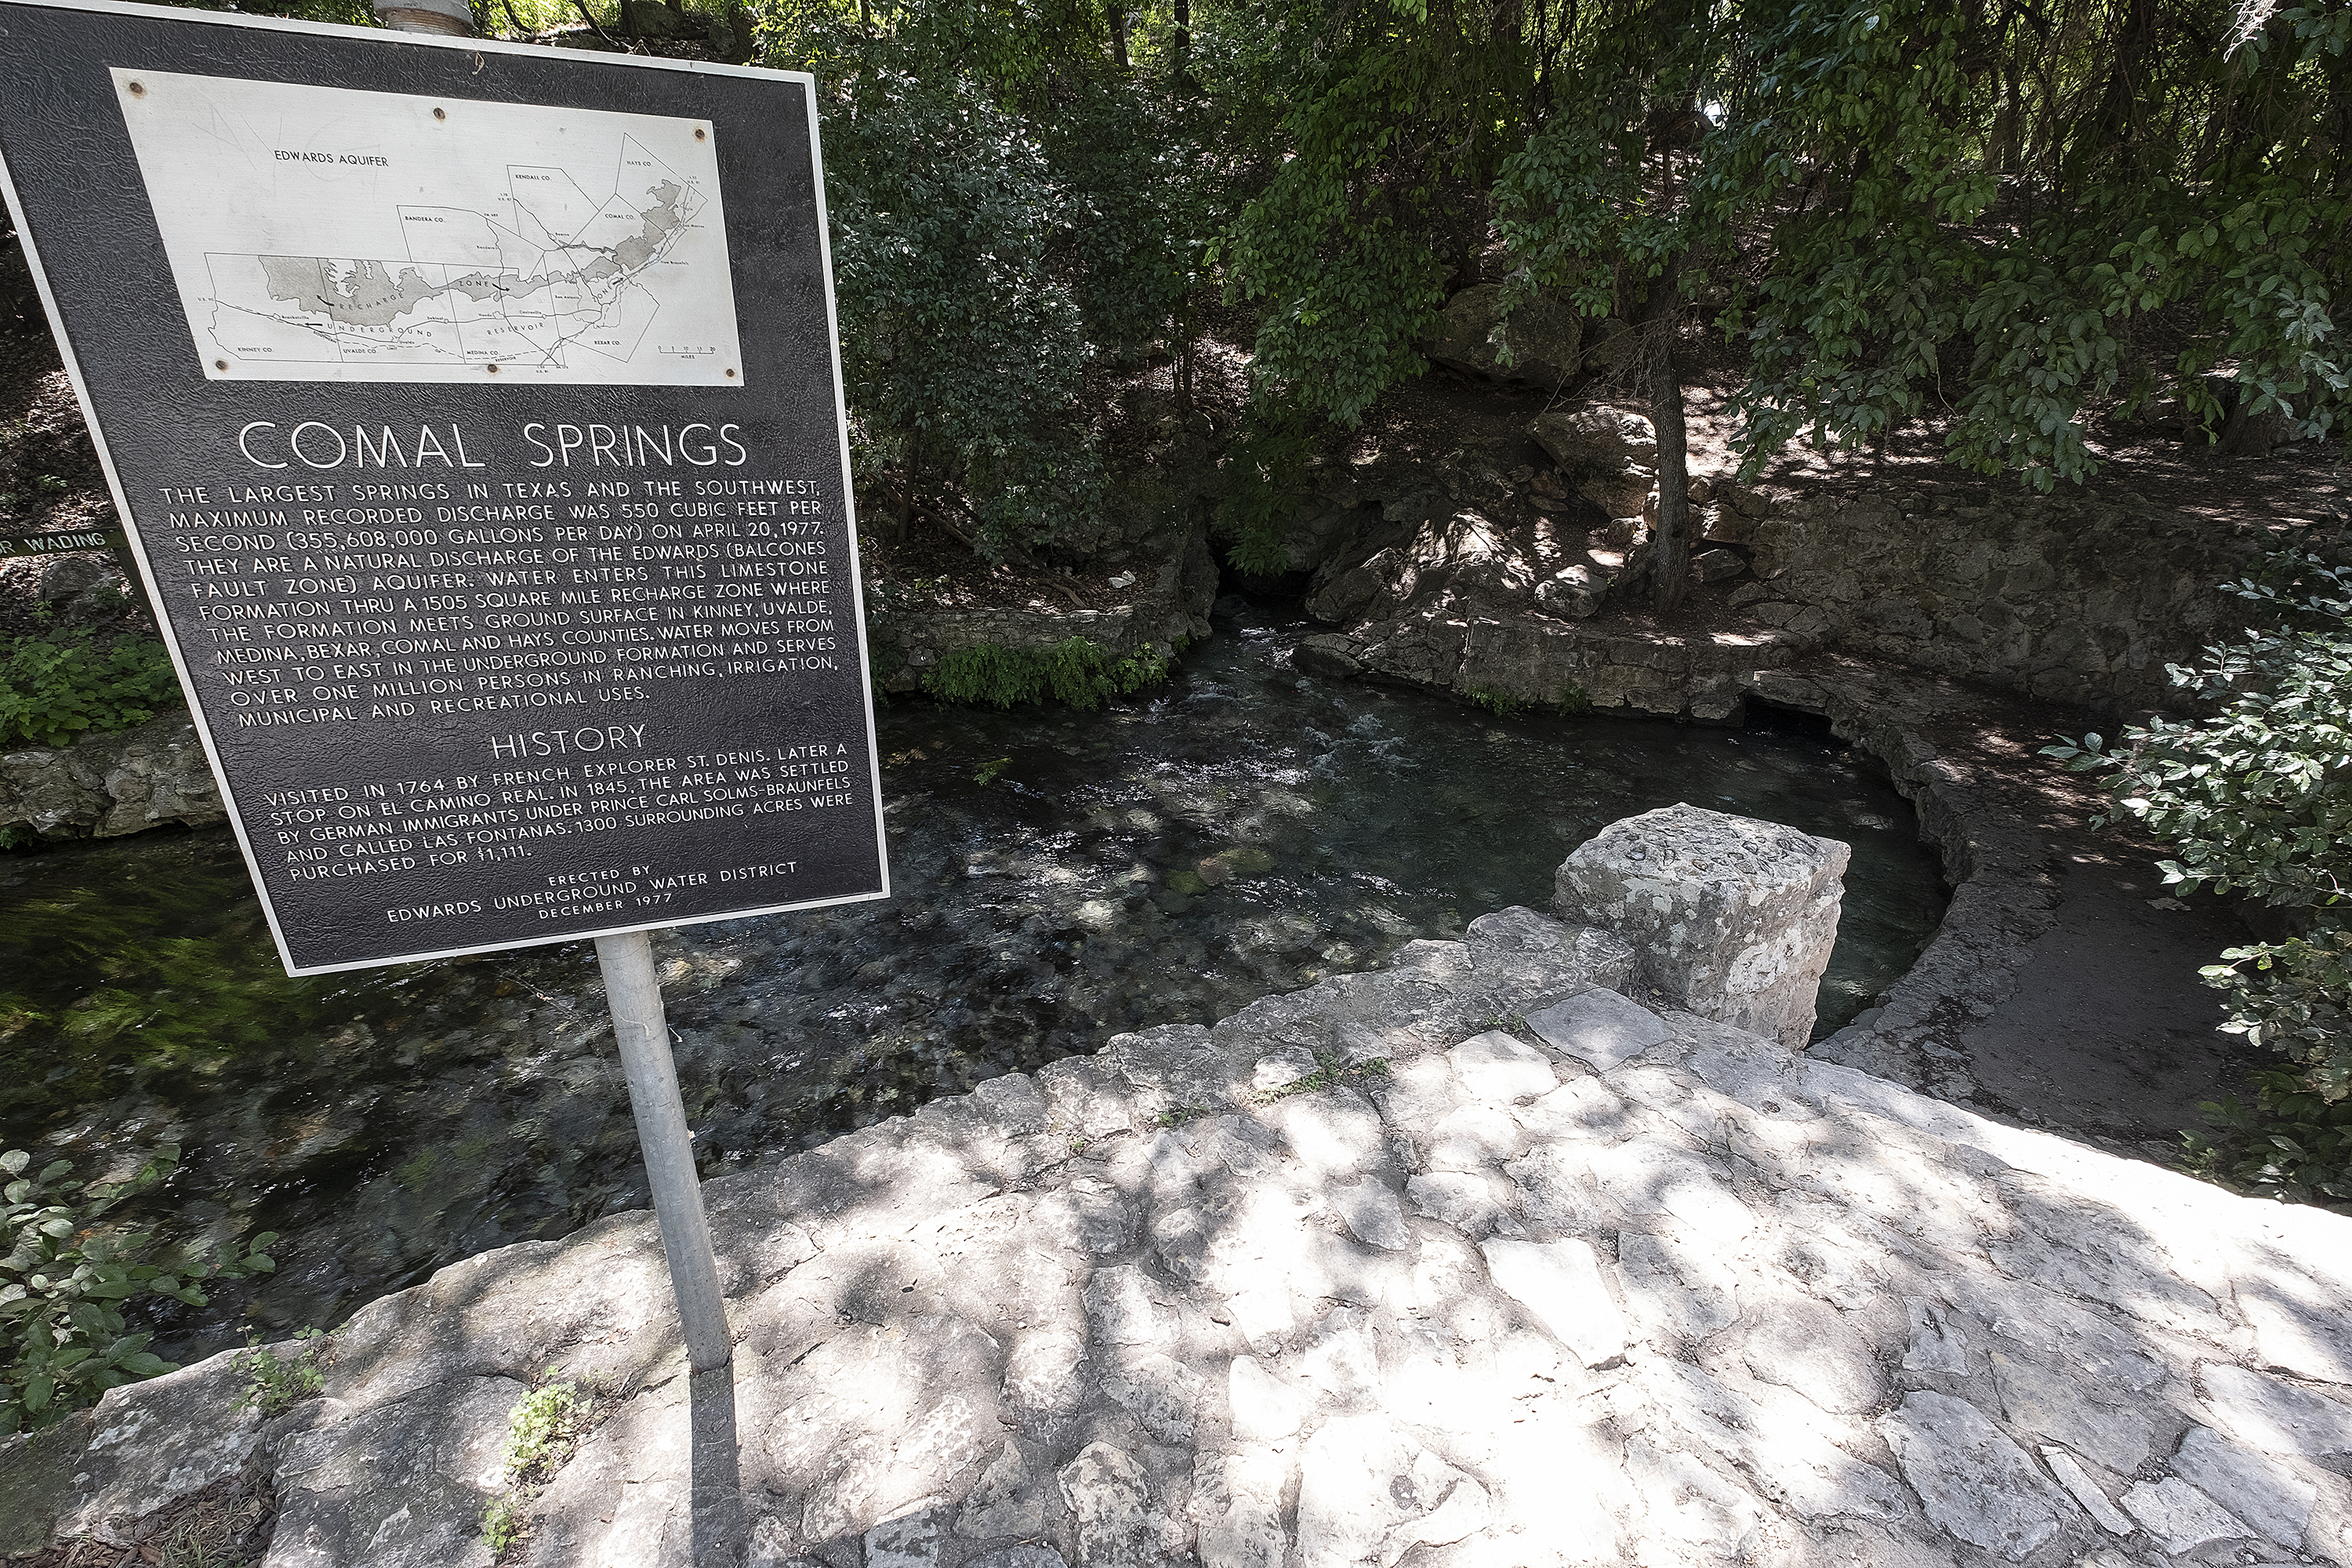 06-17-2019 -- Comal Springs in New Braunfels, Tx. These springs feed what becomes the Comal River.